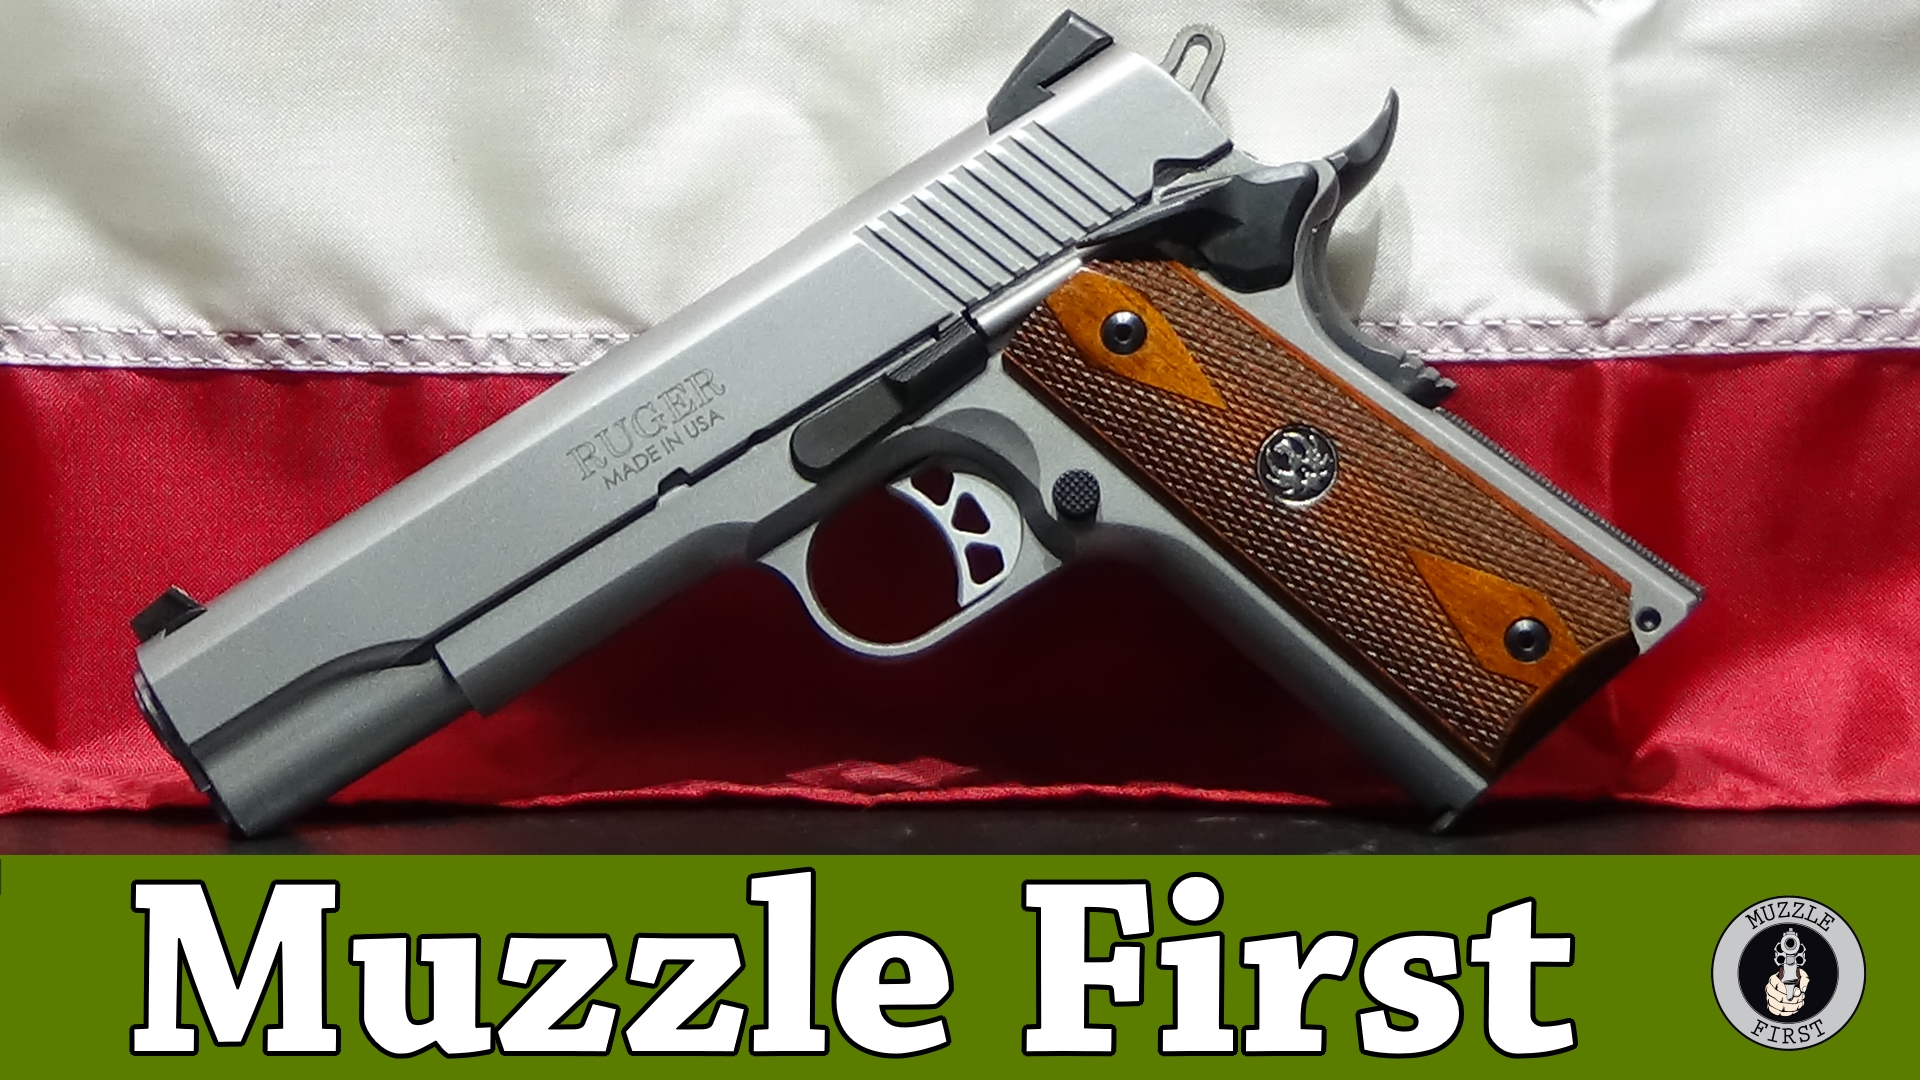 Product Reviews Videos - Muzzle First